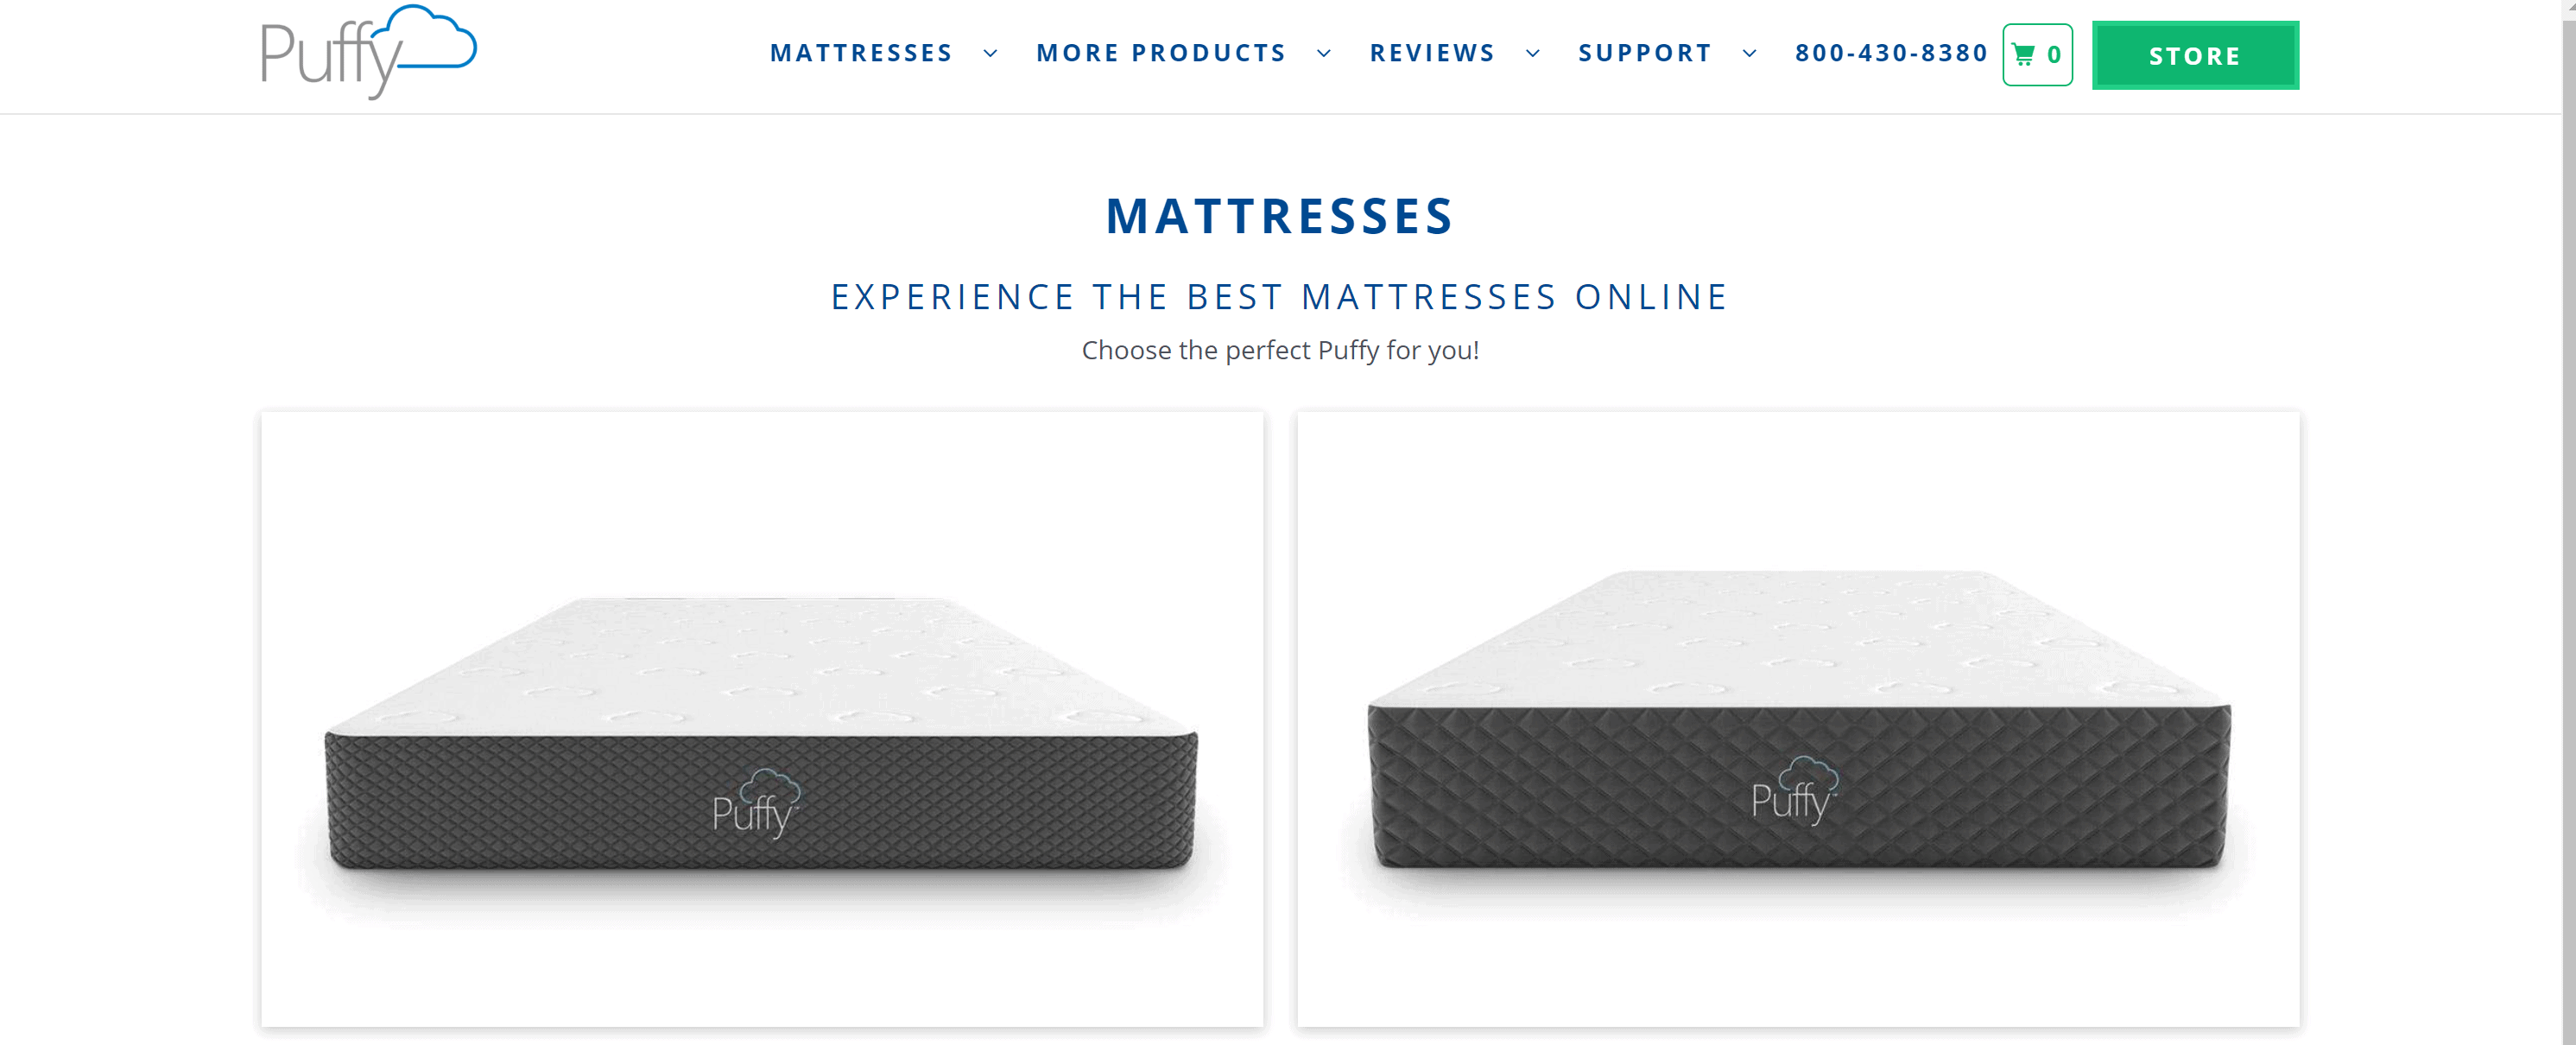 Pufffy mattress coupons and discount